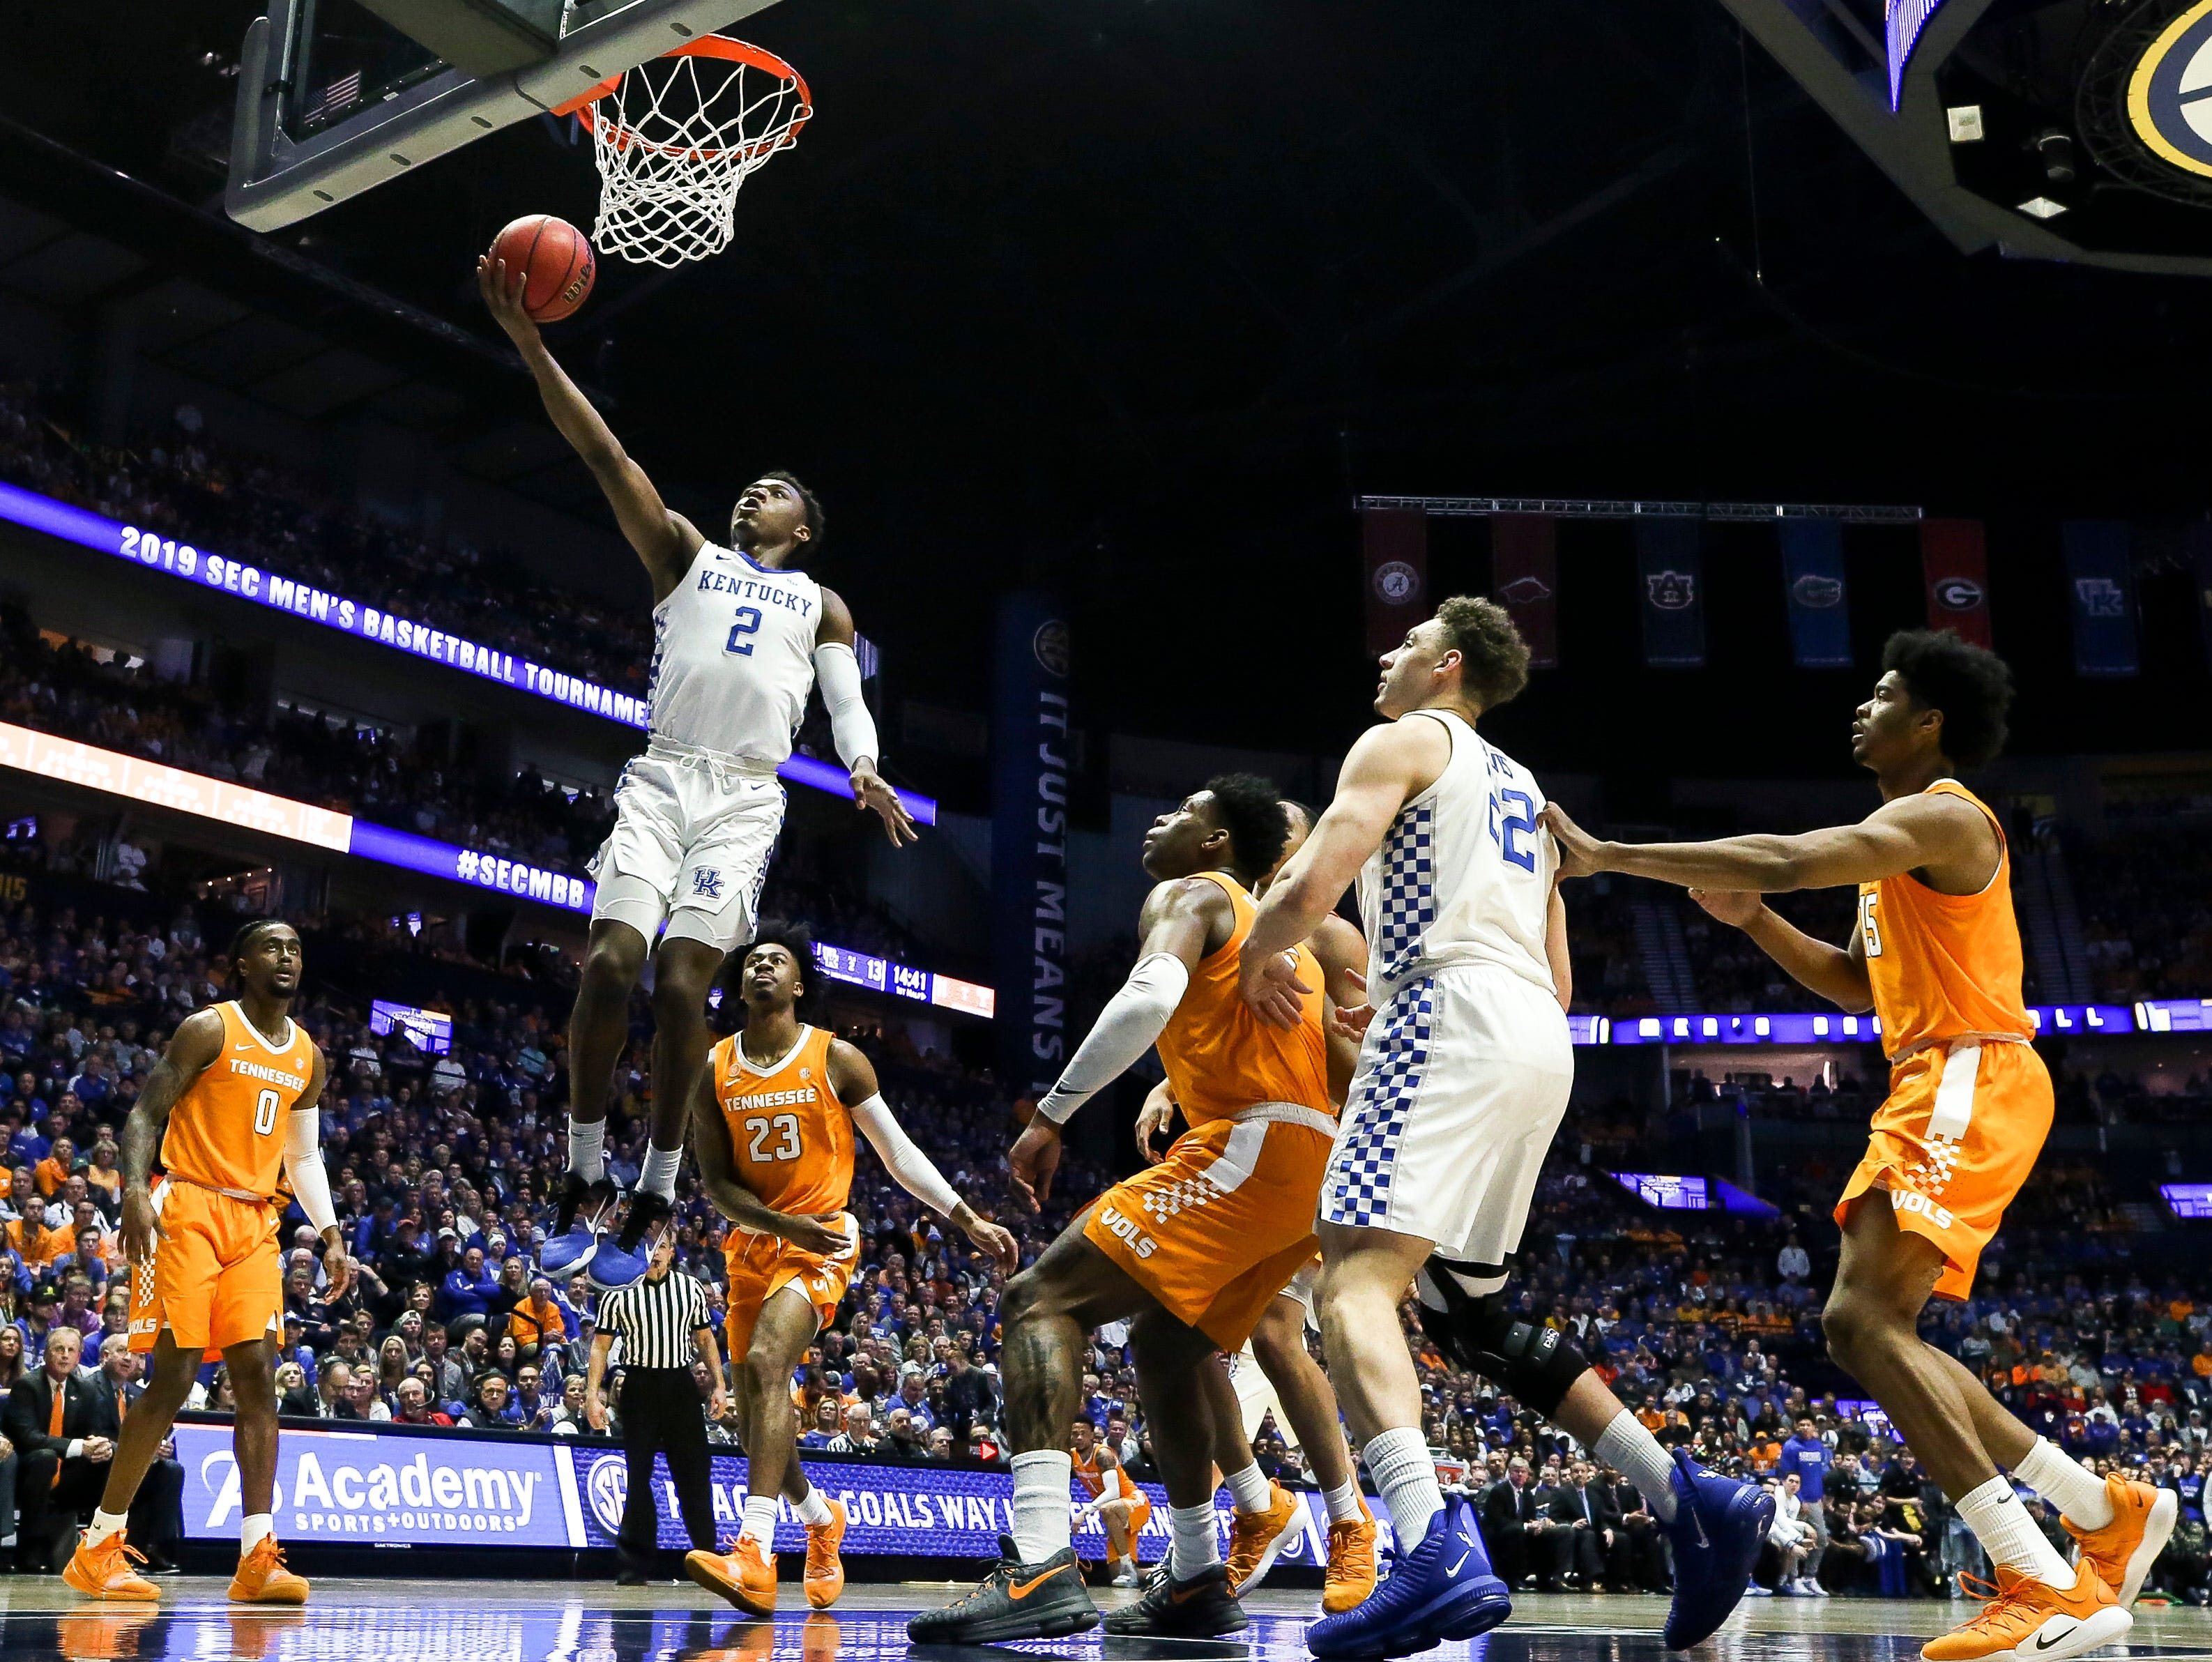 Kentucky guard Ashton Hagans (2) shoots against Tennessee during the first half of the SEC Men's Basketball Tournament semifinal game at Bridgestone Arena in Nashville, Tenn., Saturday, March 16, 2019.